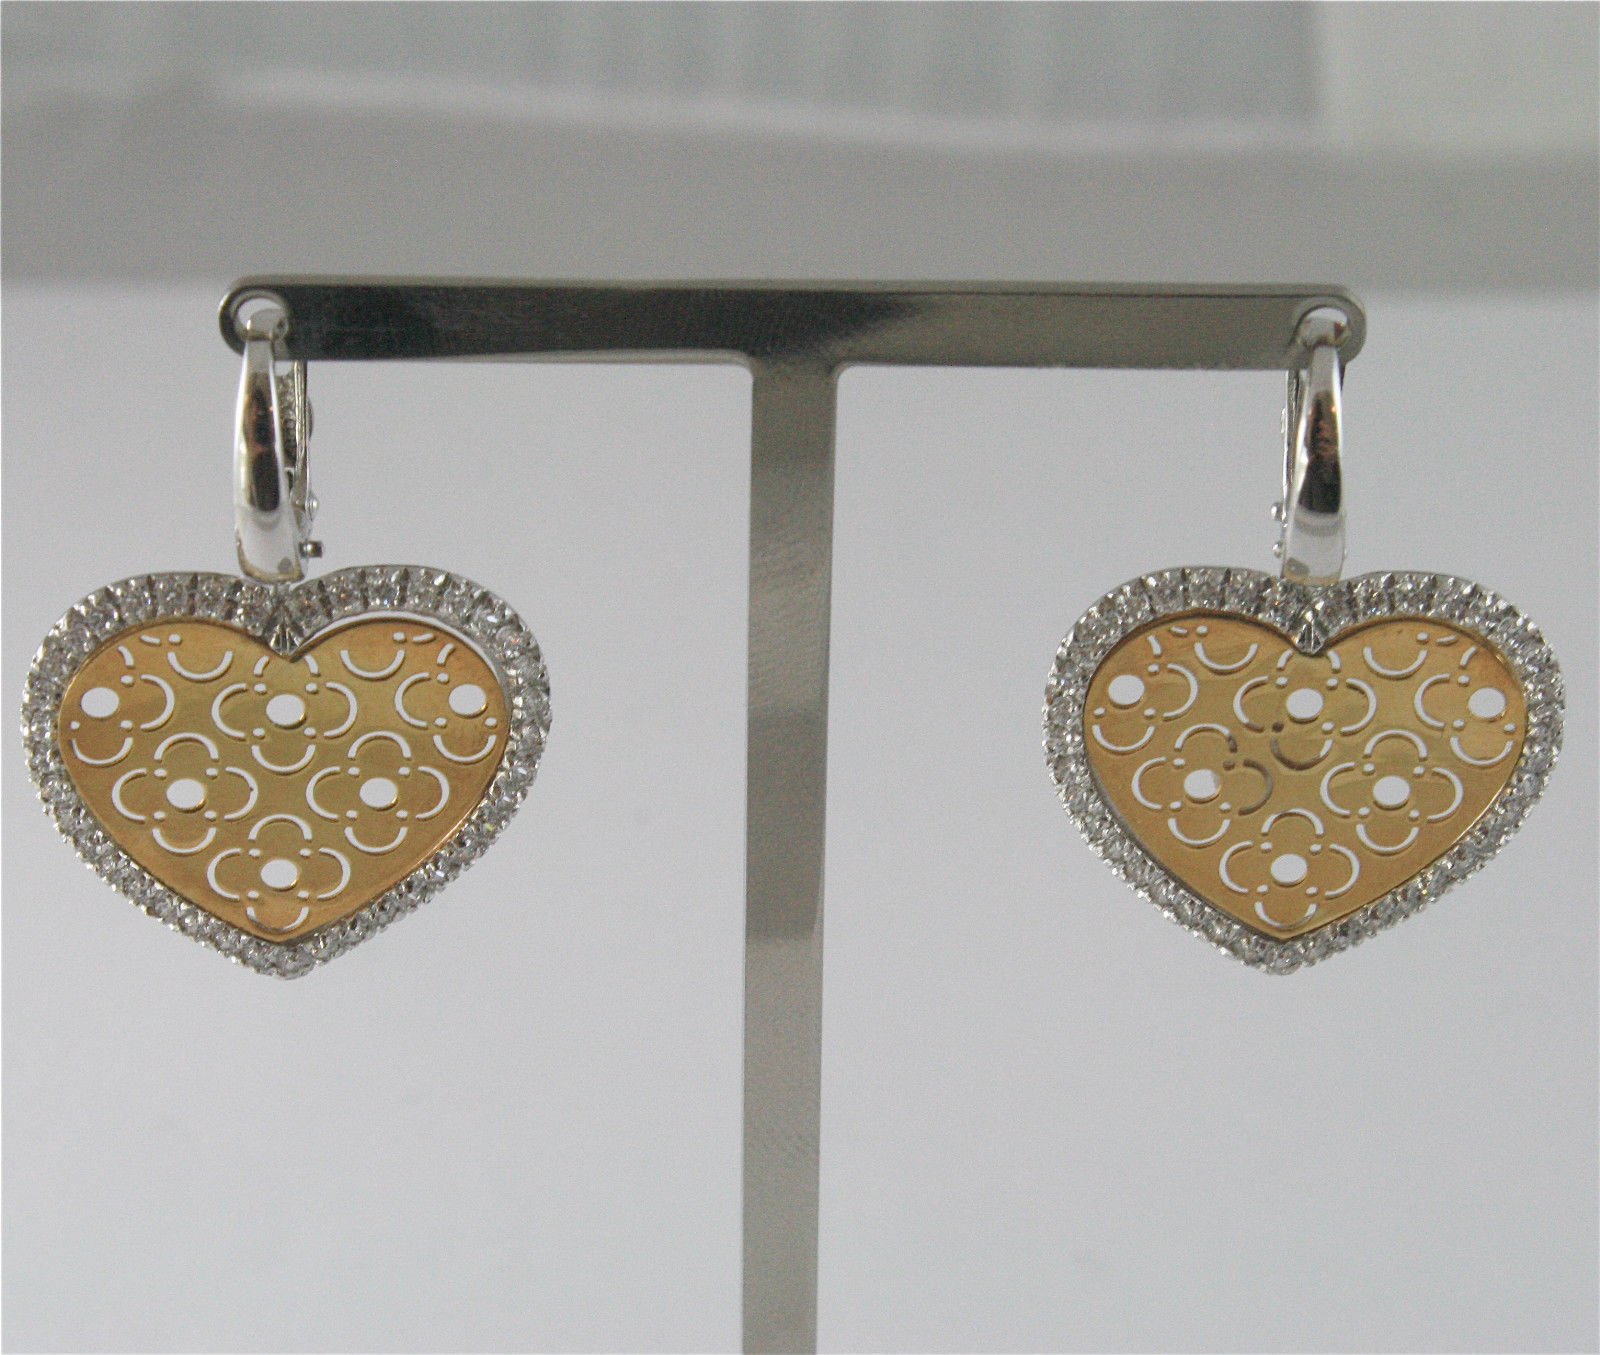 18K SOLID YELLOW AND WHITE GOLD EARRINGS WITH HEARTS PIERCED AND CUBIC ZIRCONIA